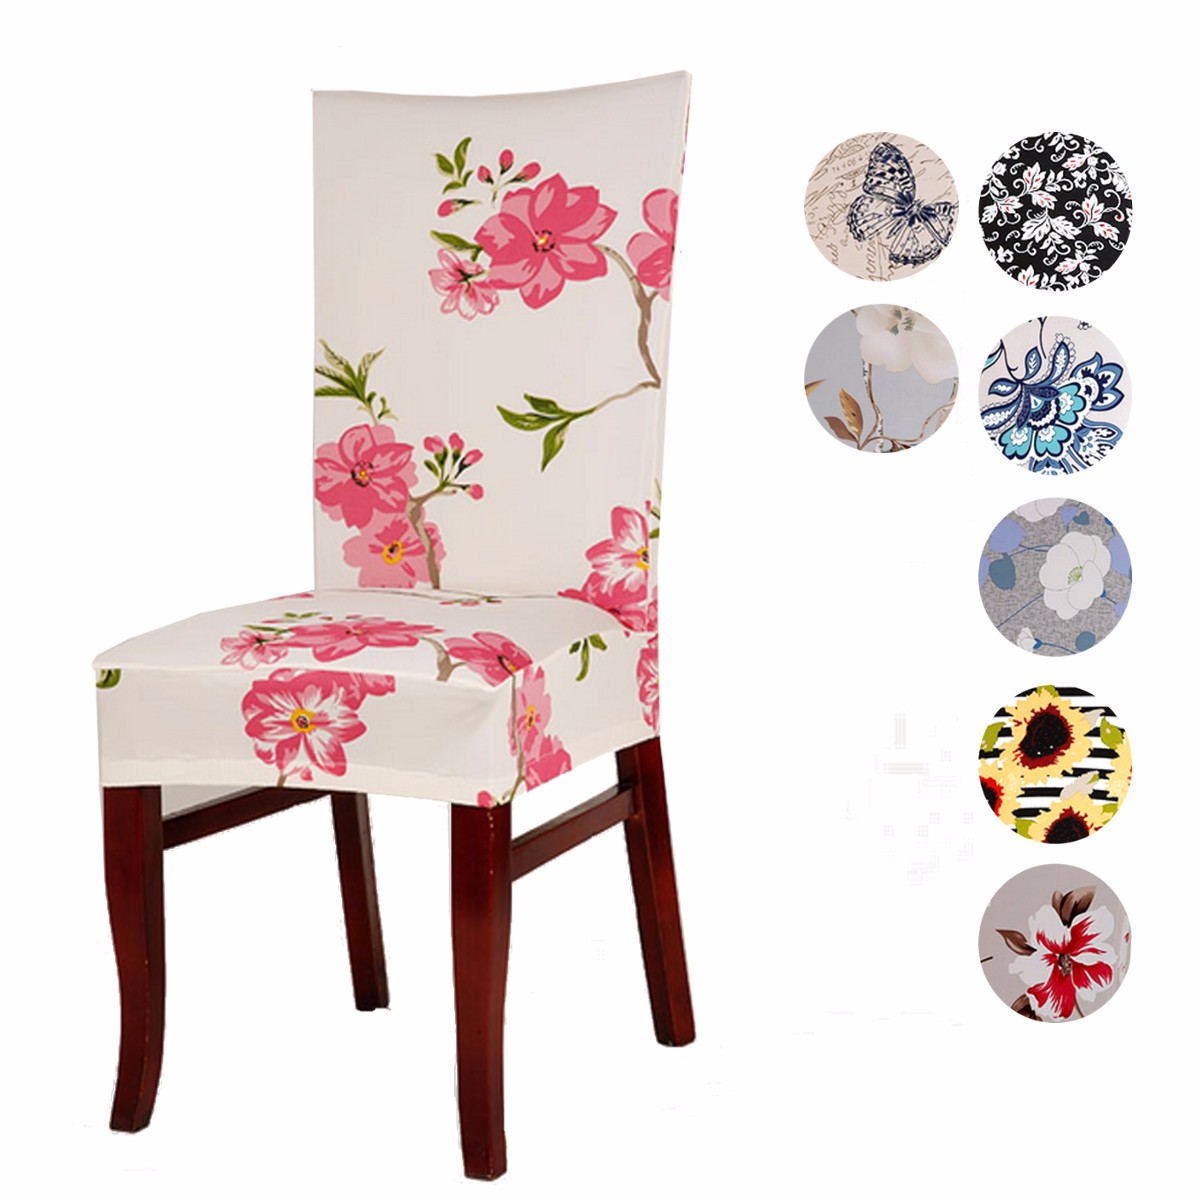 Chair Cover Patterns Us 10 77 49 Off Spandex Stretch 11 Patterns Chair Covers Universal Printing For Home Dining Restaurant Weddings Banquet Hotel Chair Cover Decor In